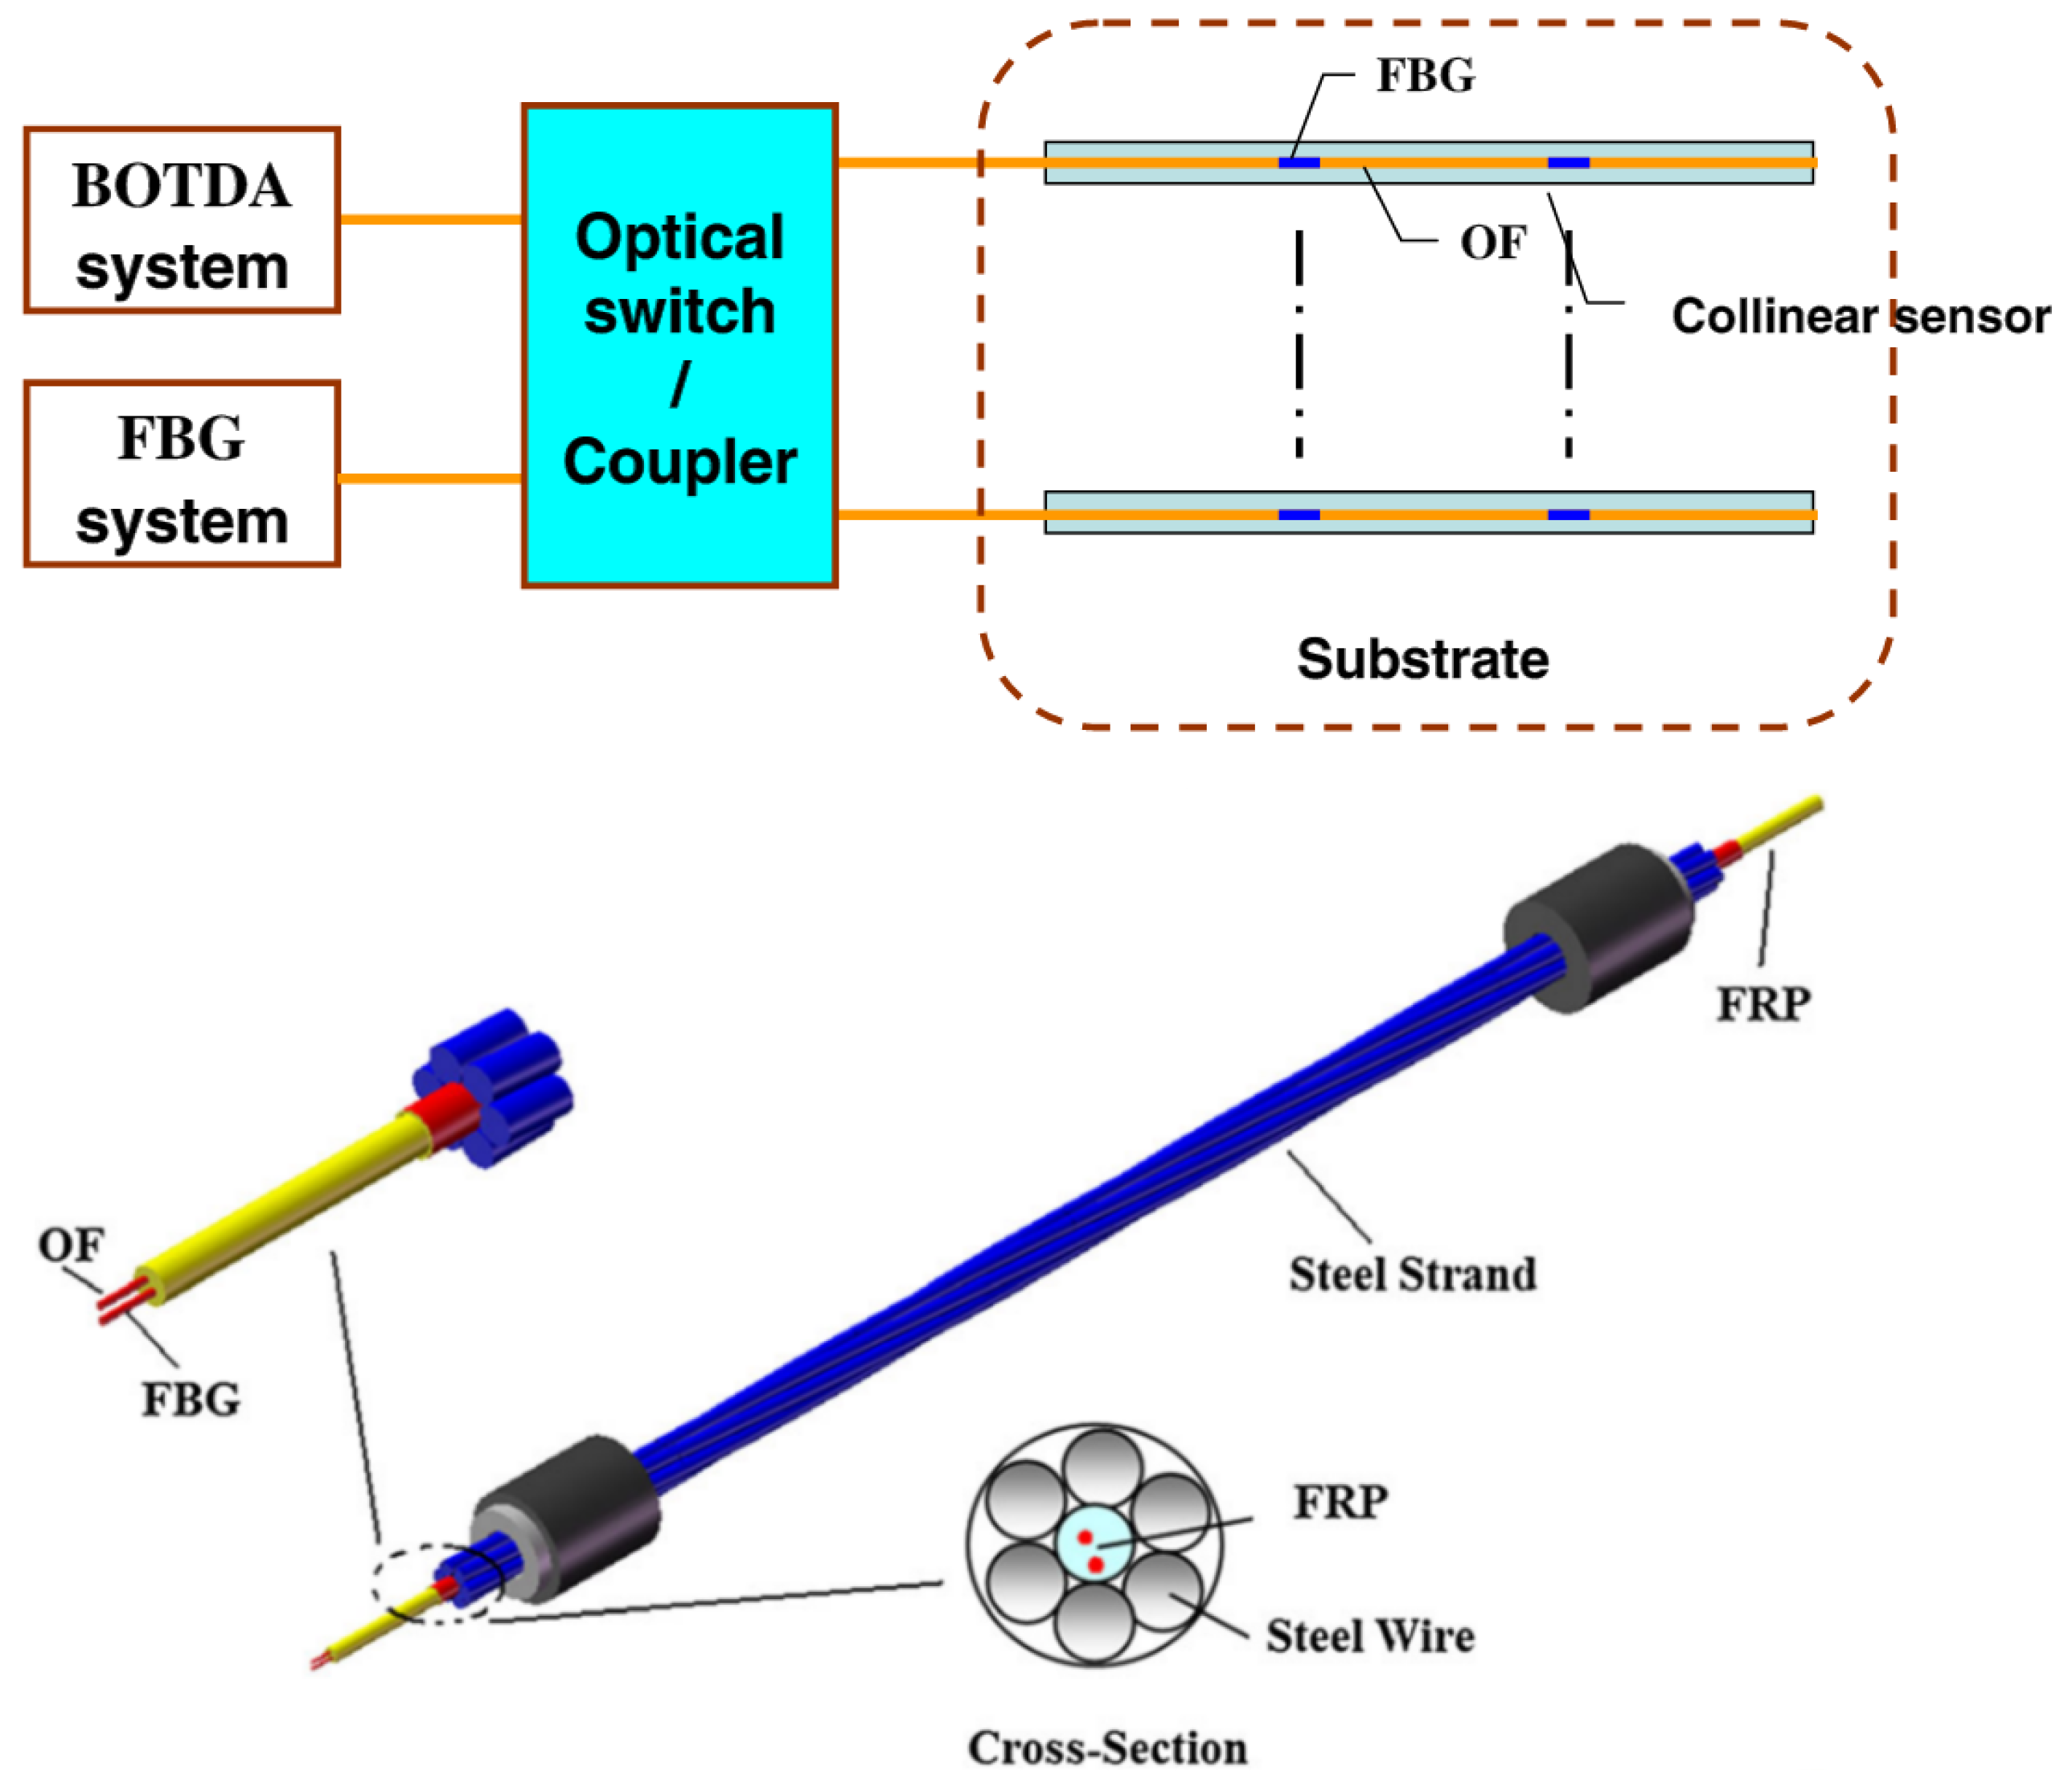 Sensors Free Full Text A Review Of Distributed Optical Fiber Optics Diagram Optic Technology And Its Role In The 16 00748 G029 1024